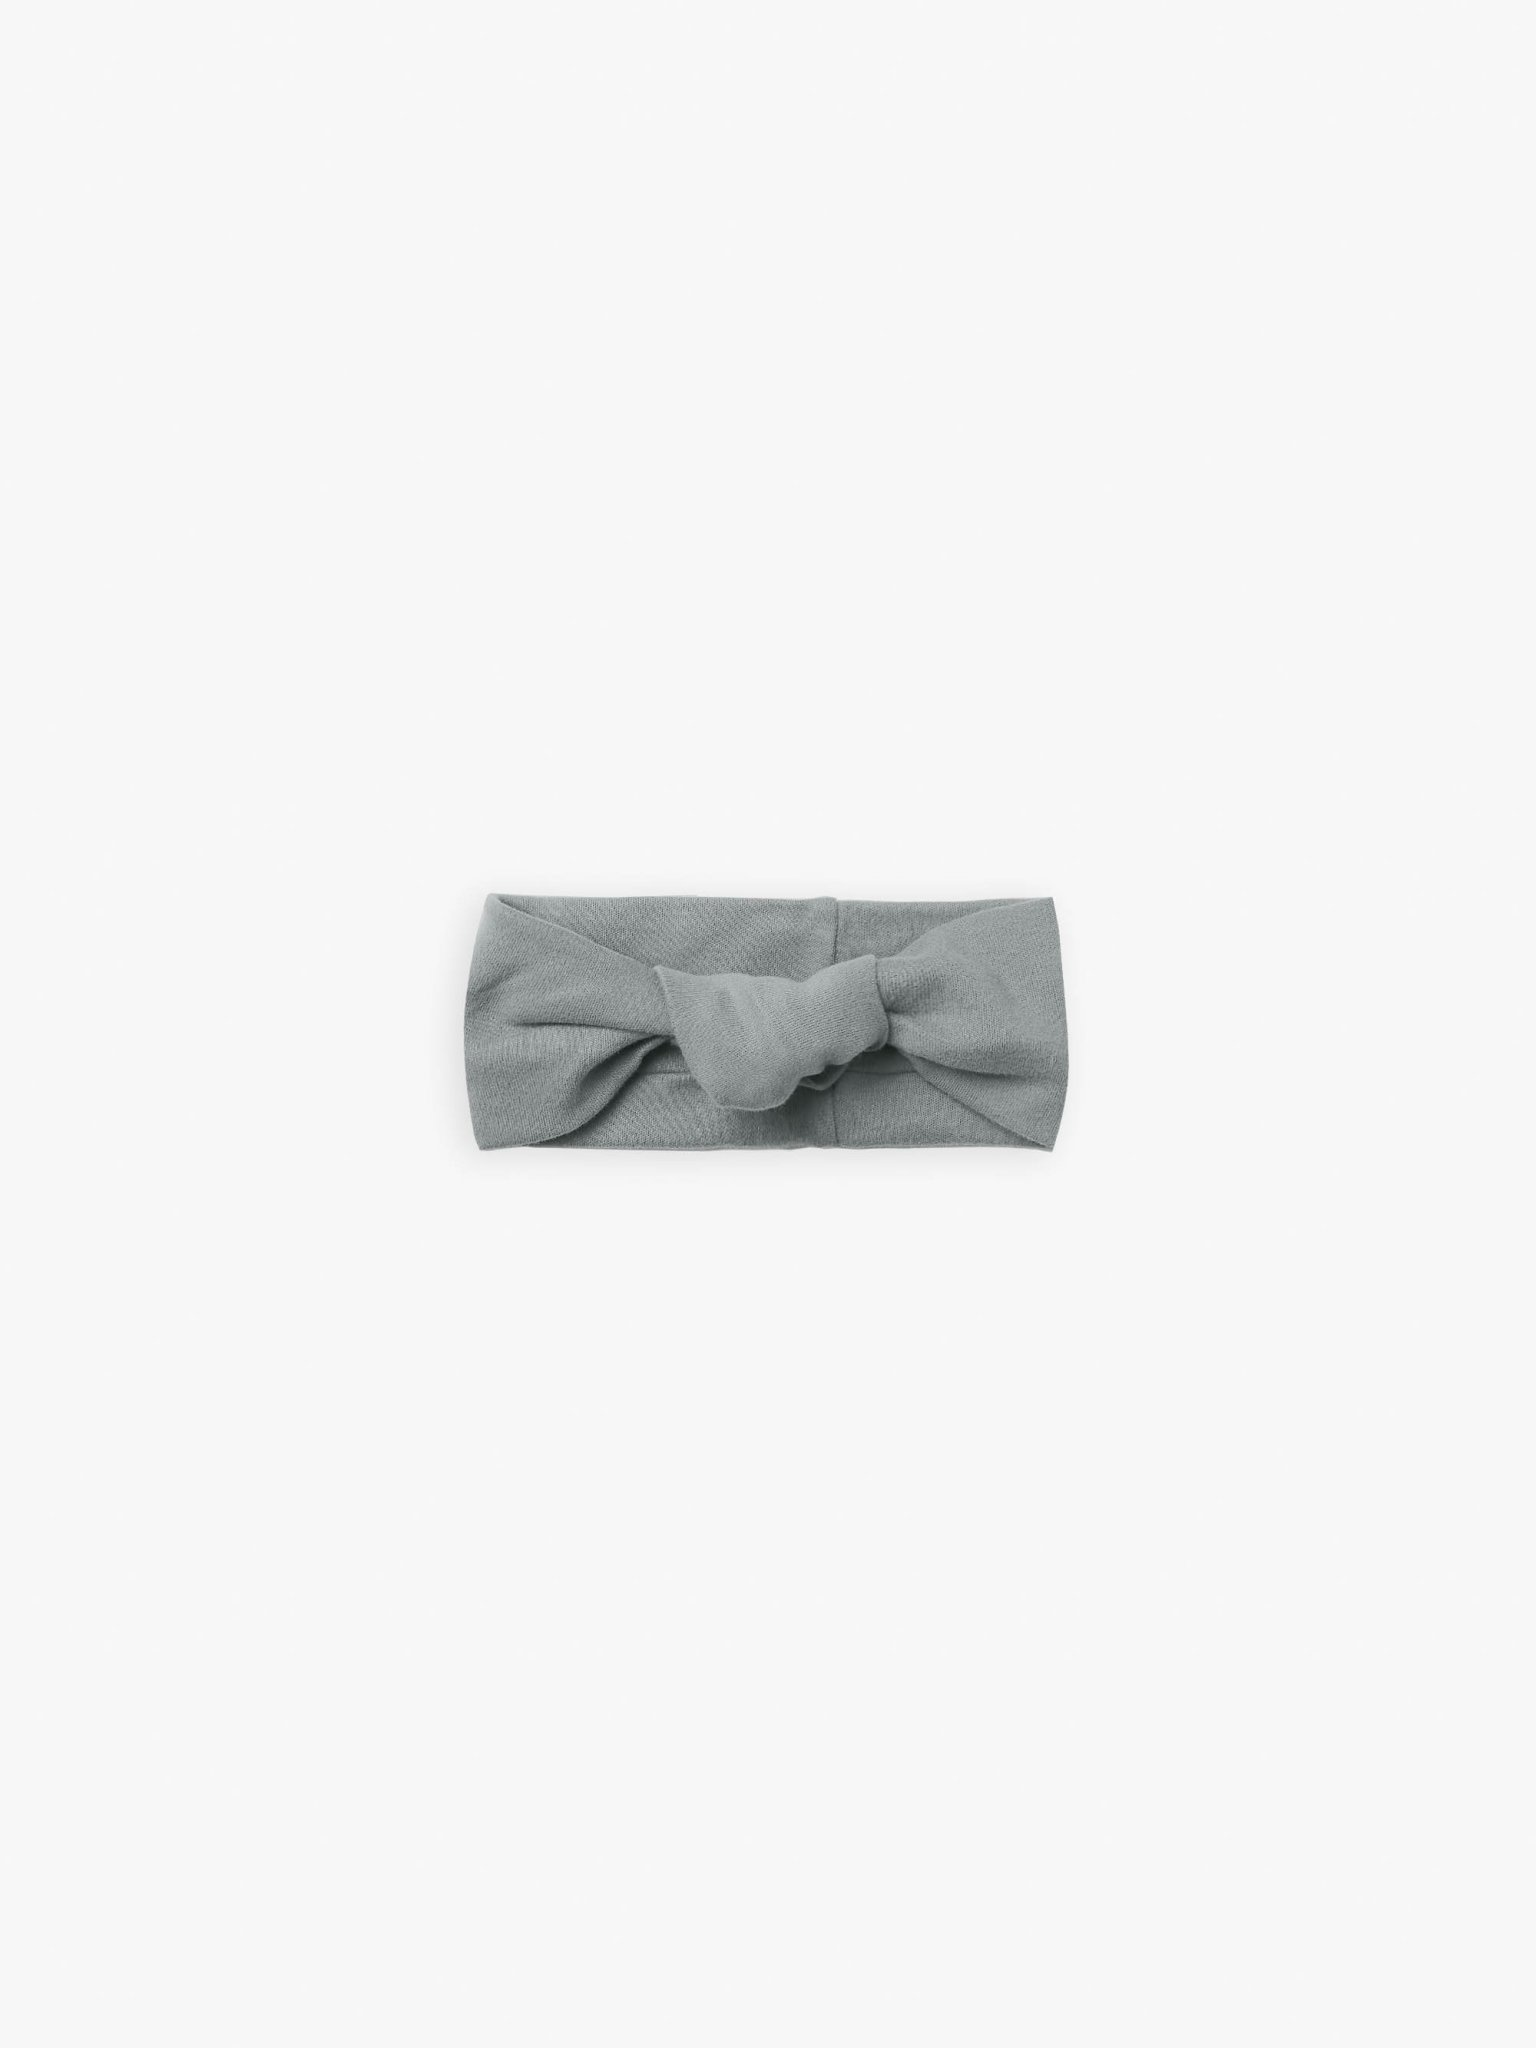 Quincy Mae Quincy Mae | Knotted Headband Ocean